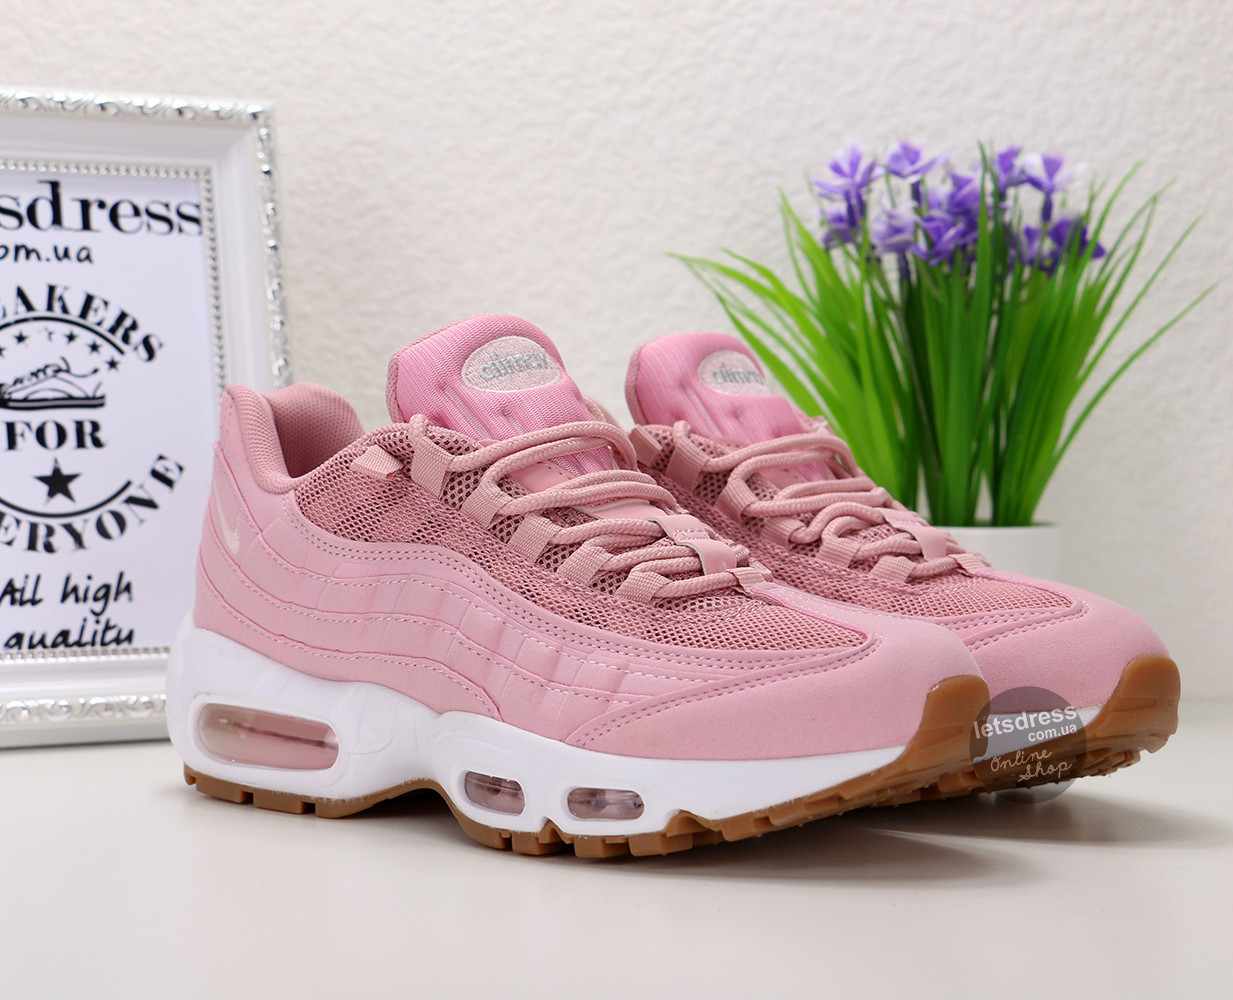 d8c92005 Женские кроссовки Nike Air Max 95 Premium Pink Oxford/Bright Melon | Аир  Макс 95